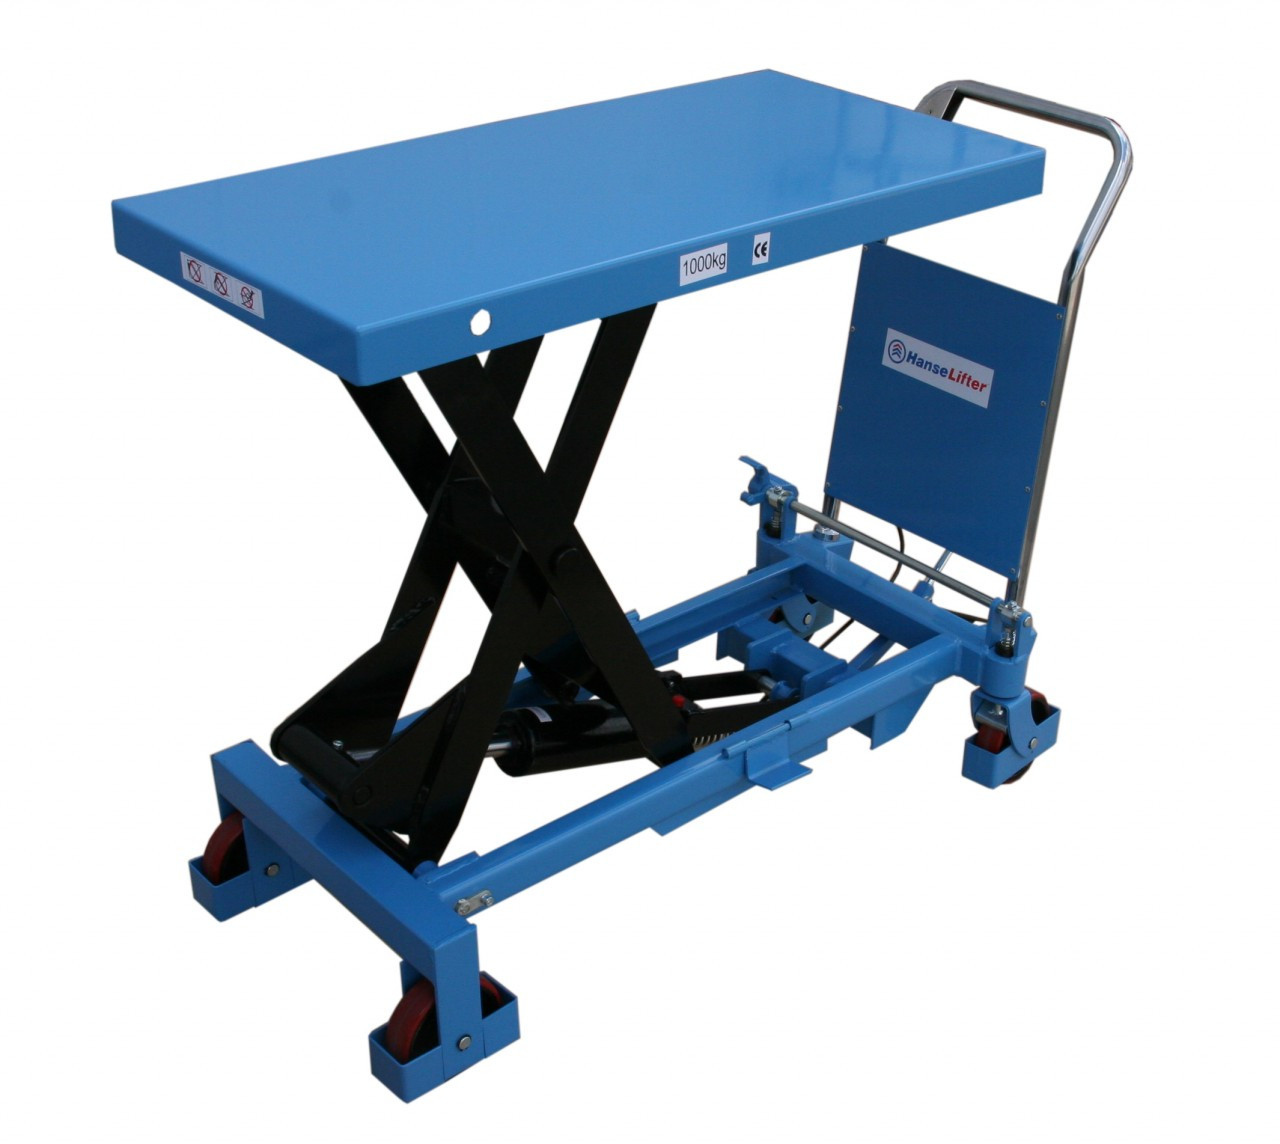 2 Ton Walk Behind Pallet Stacker Electric Forklift Price 1: Scissor Lift Table Lifting Up To 1000kg